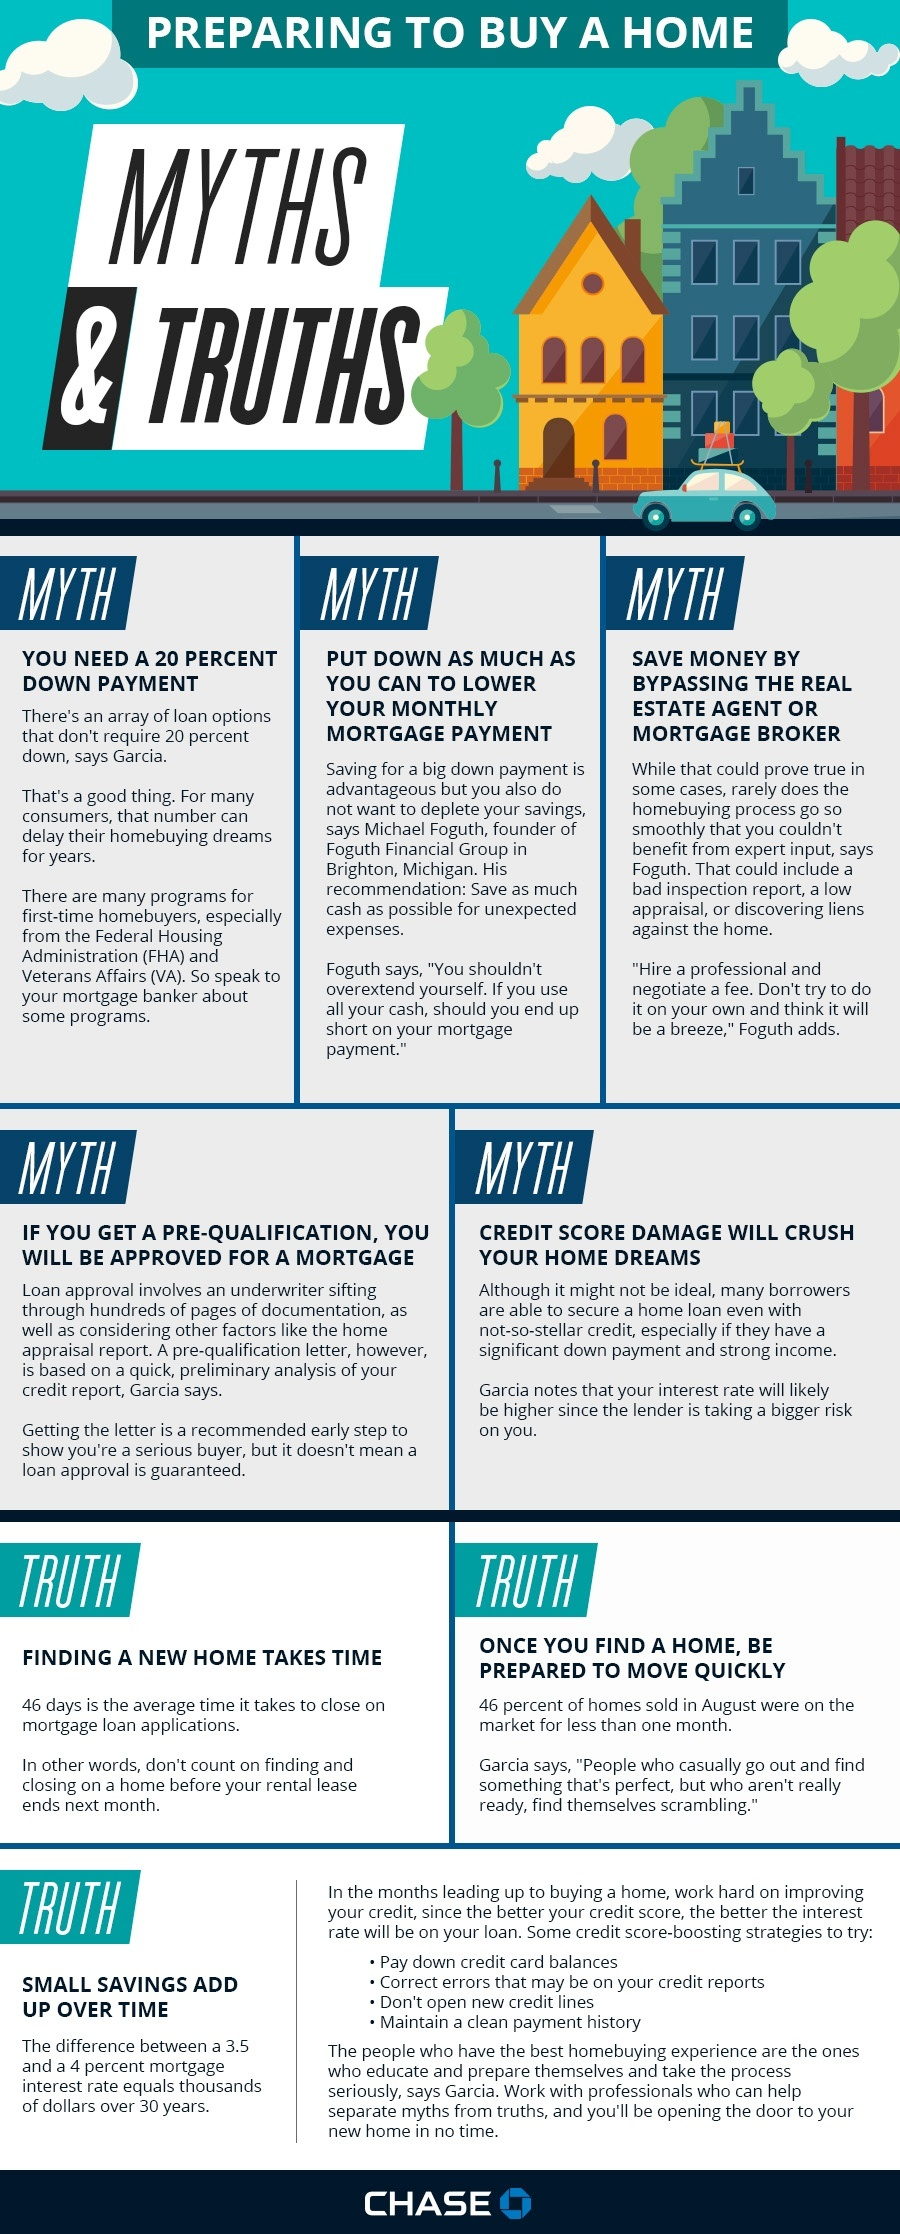 011817-homebuying-myths_sec-info.jpg